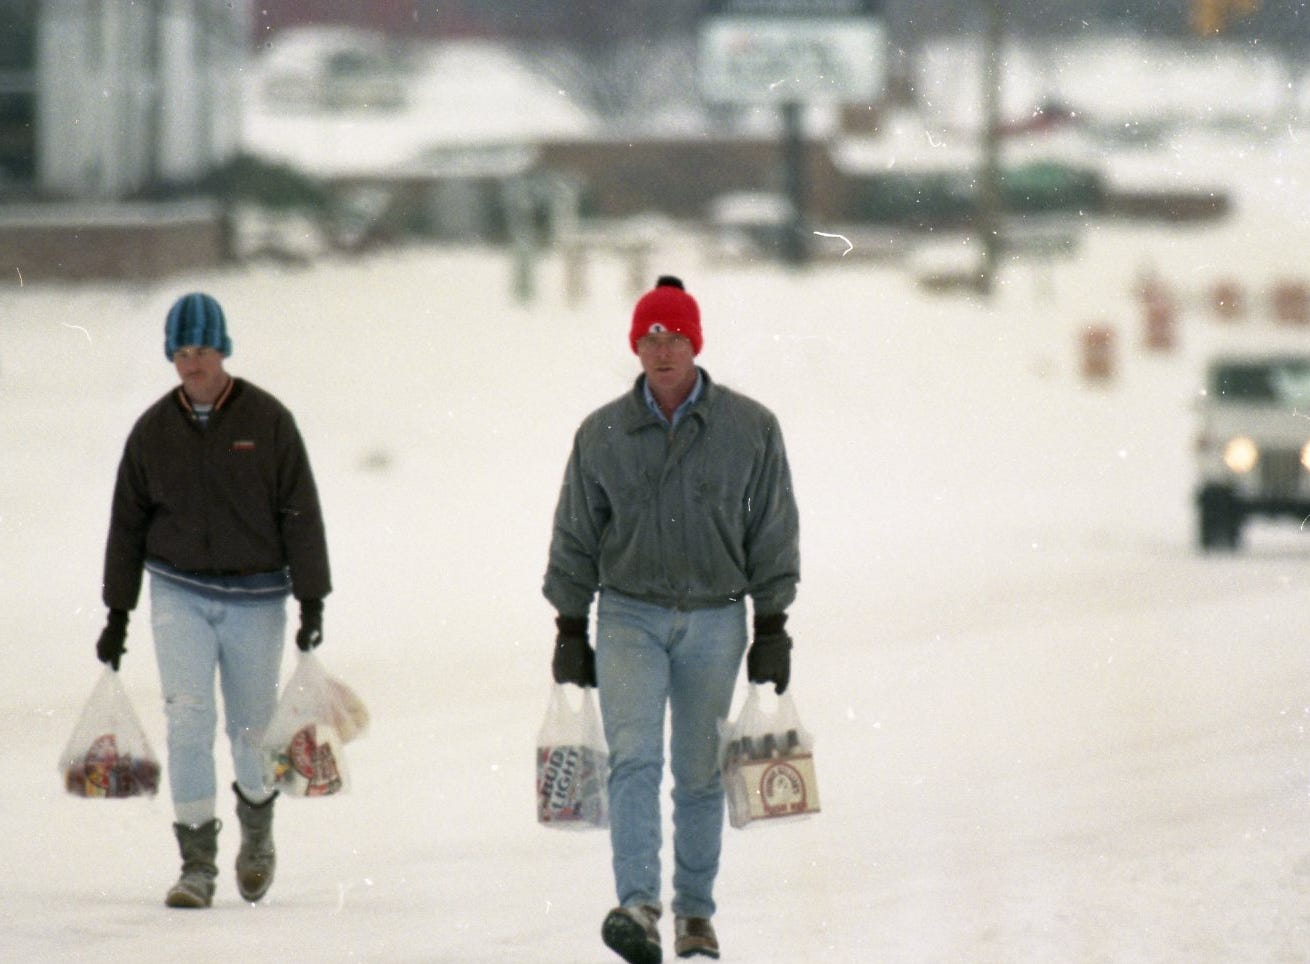 Matt and Mark Howell walked four miles in the snow to get essentials at a store on Kingston Pike in February 1996. They are walking back to their home on Peters Road.